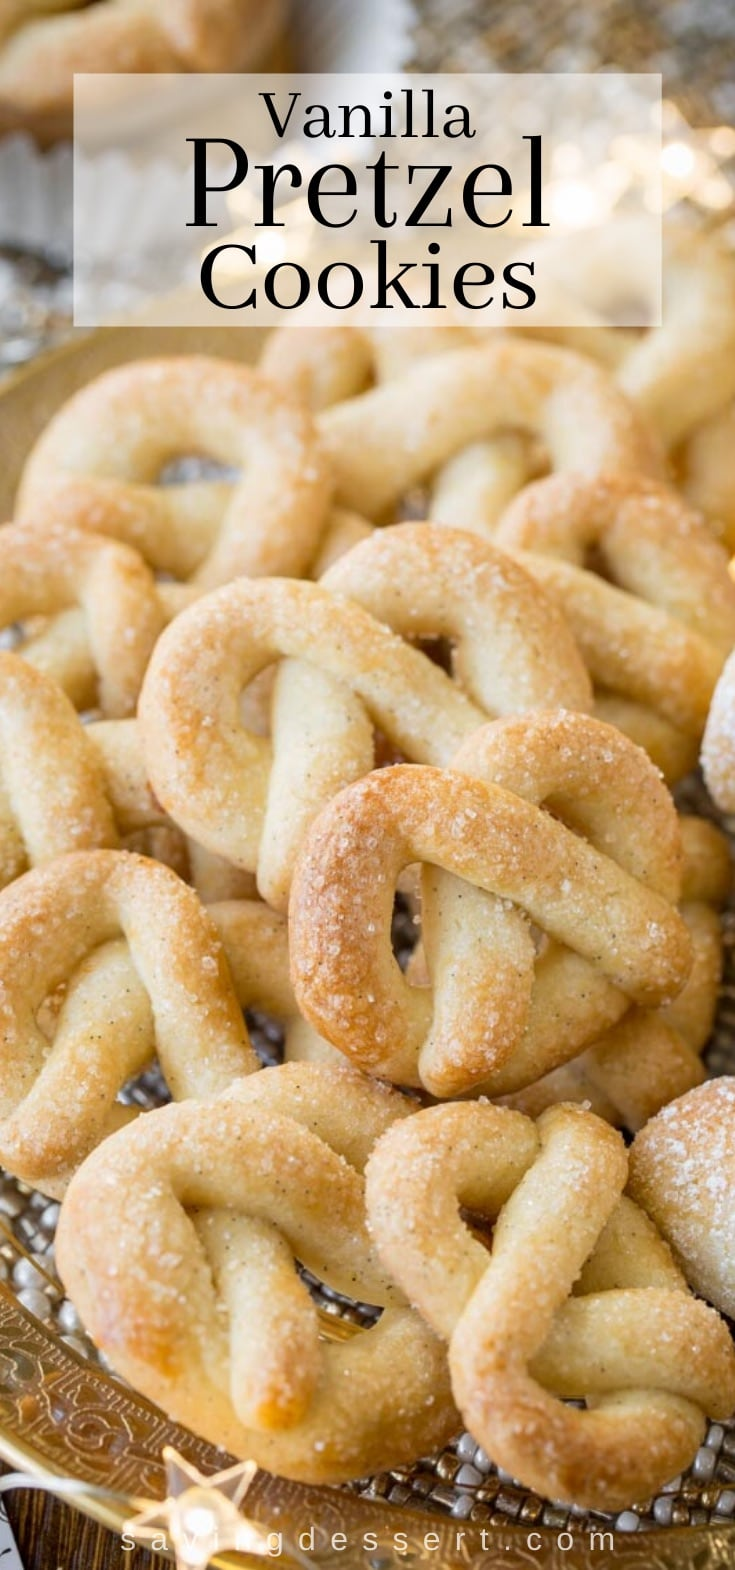 A plate filled with vanilla pretzel cookies